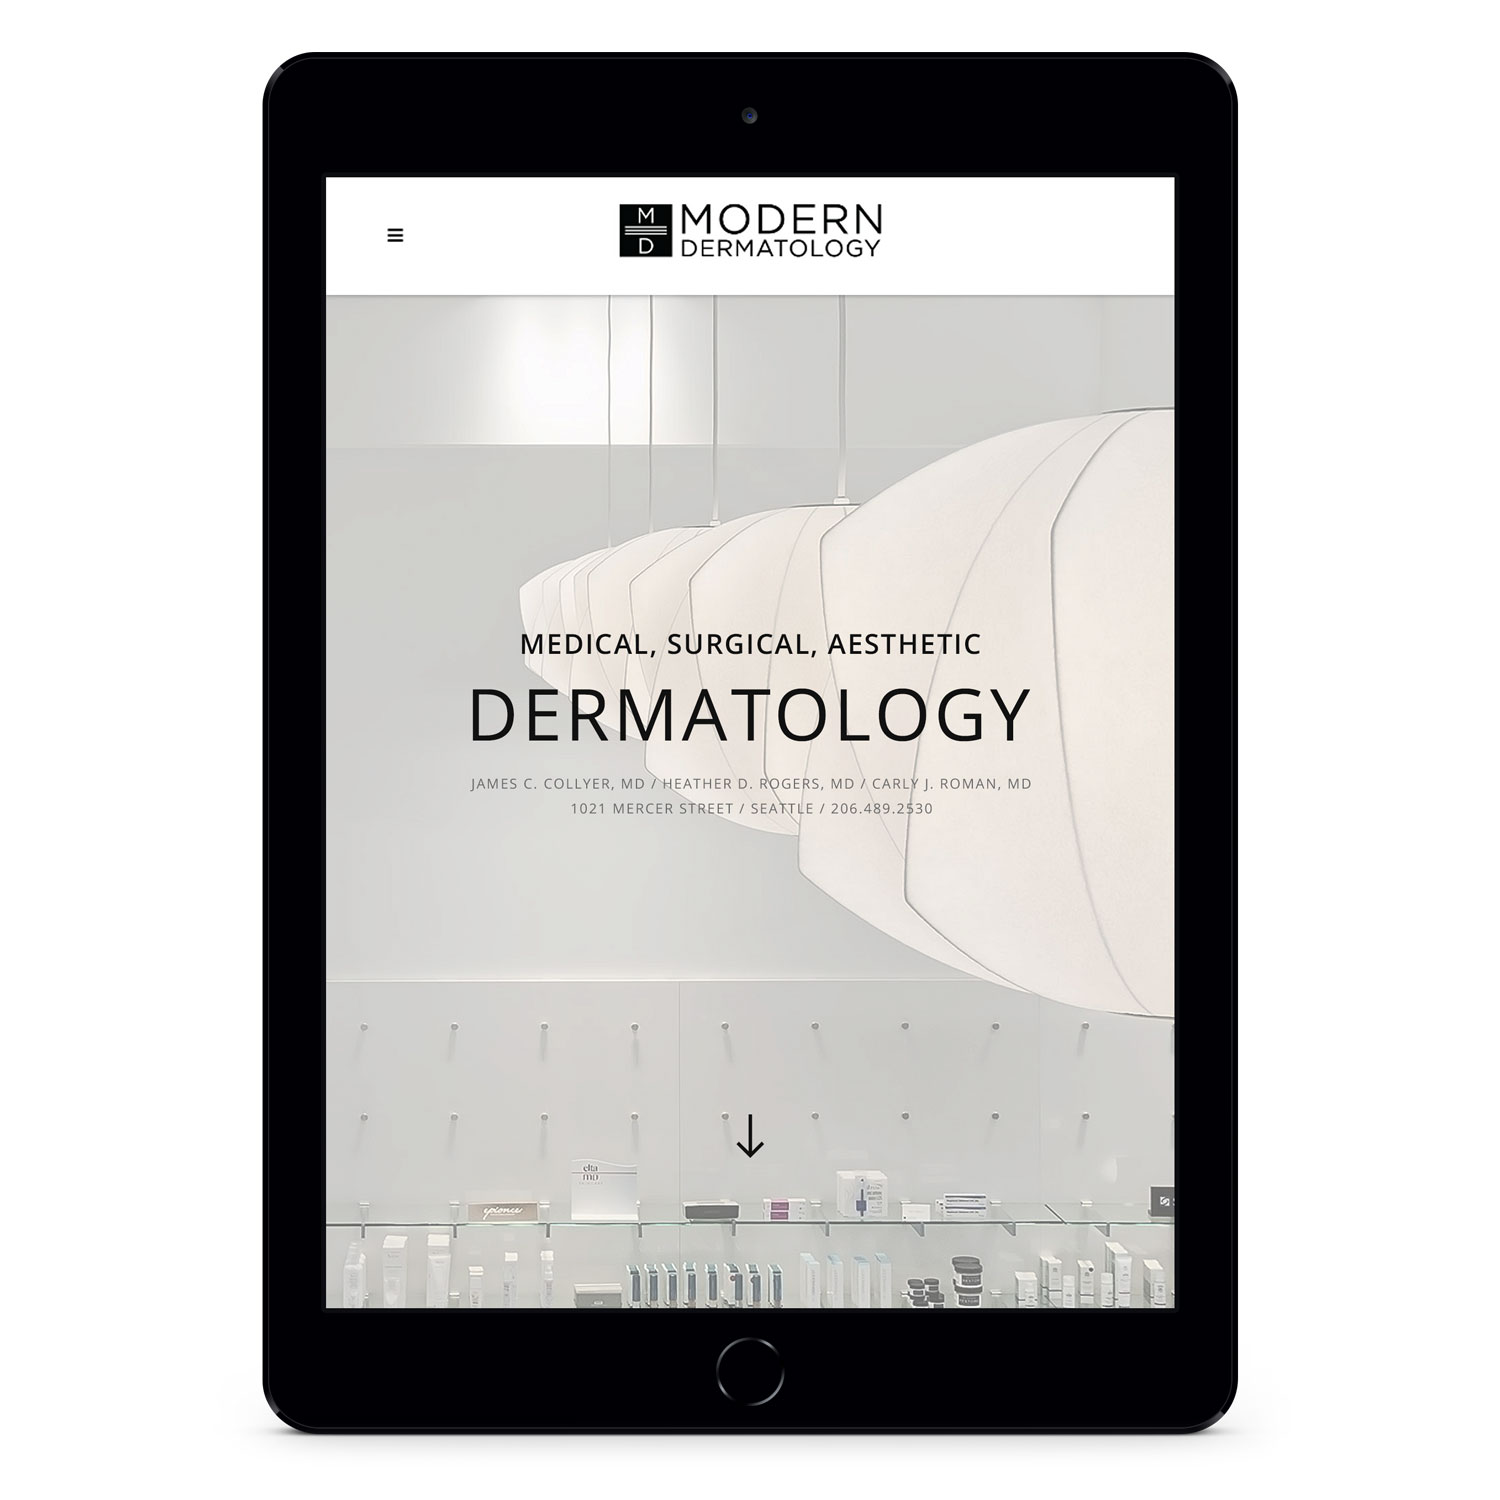 Modern Dermatology homepage on tablet